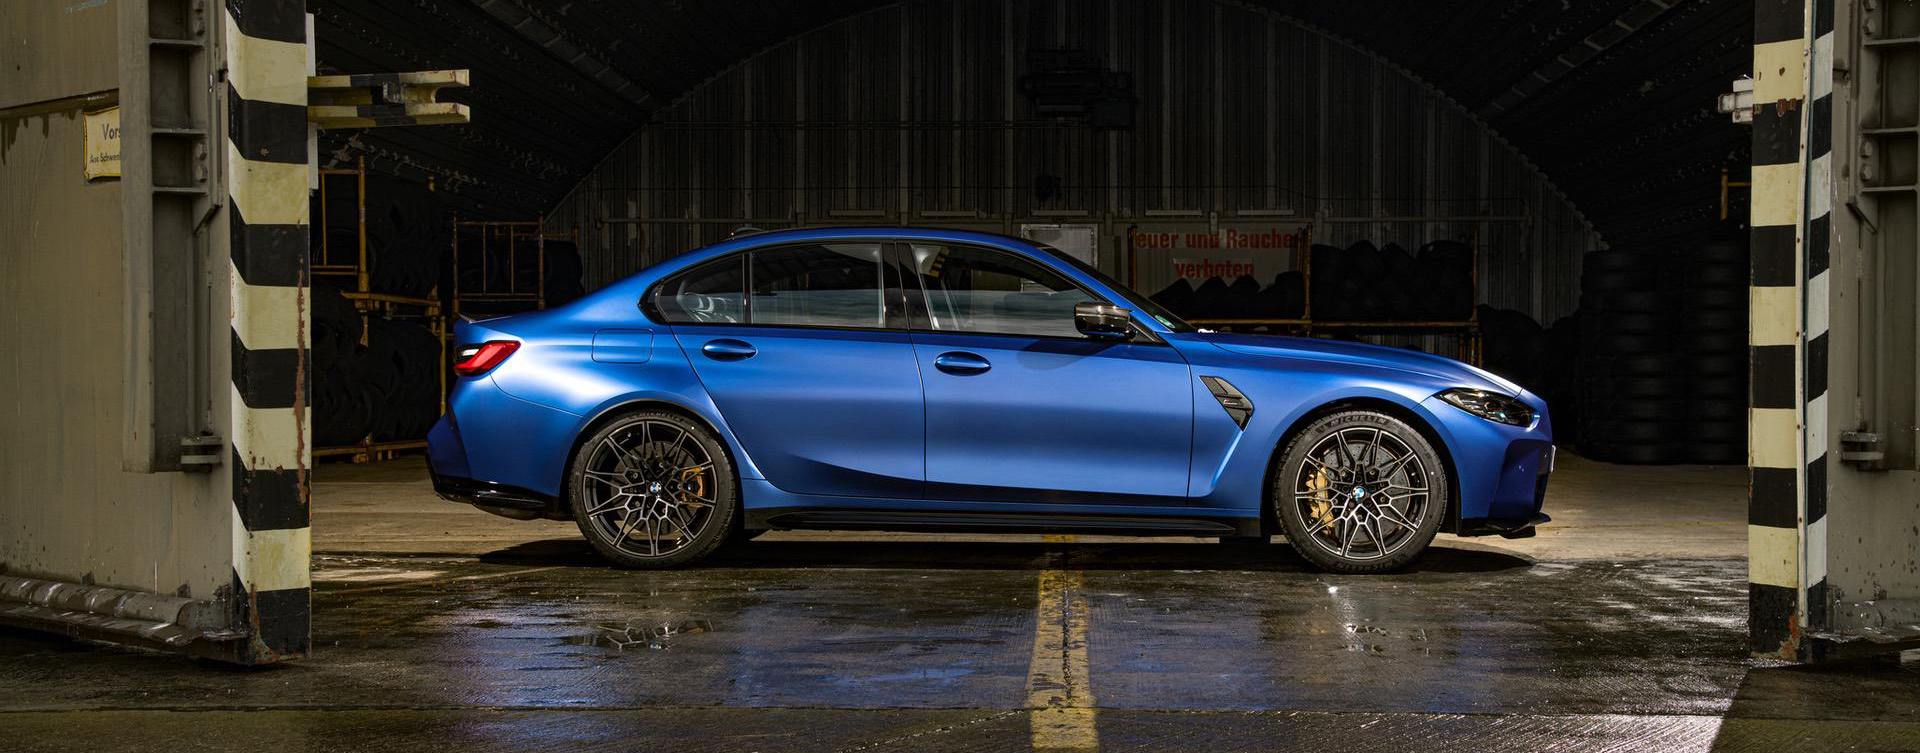 Exclusive first look at the 2021 BMW M3 in Frozen Portimao Blue